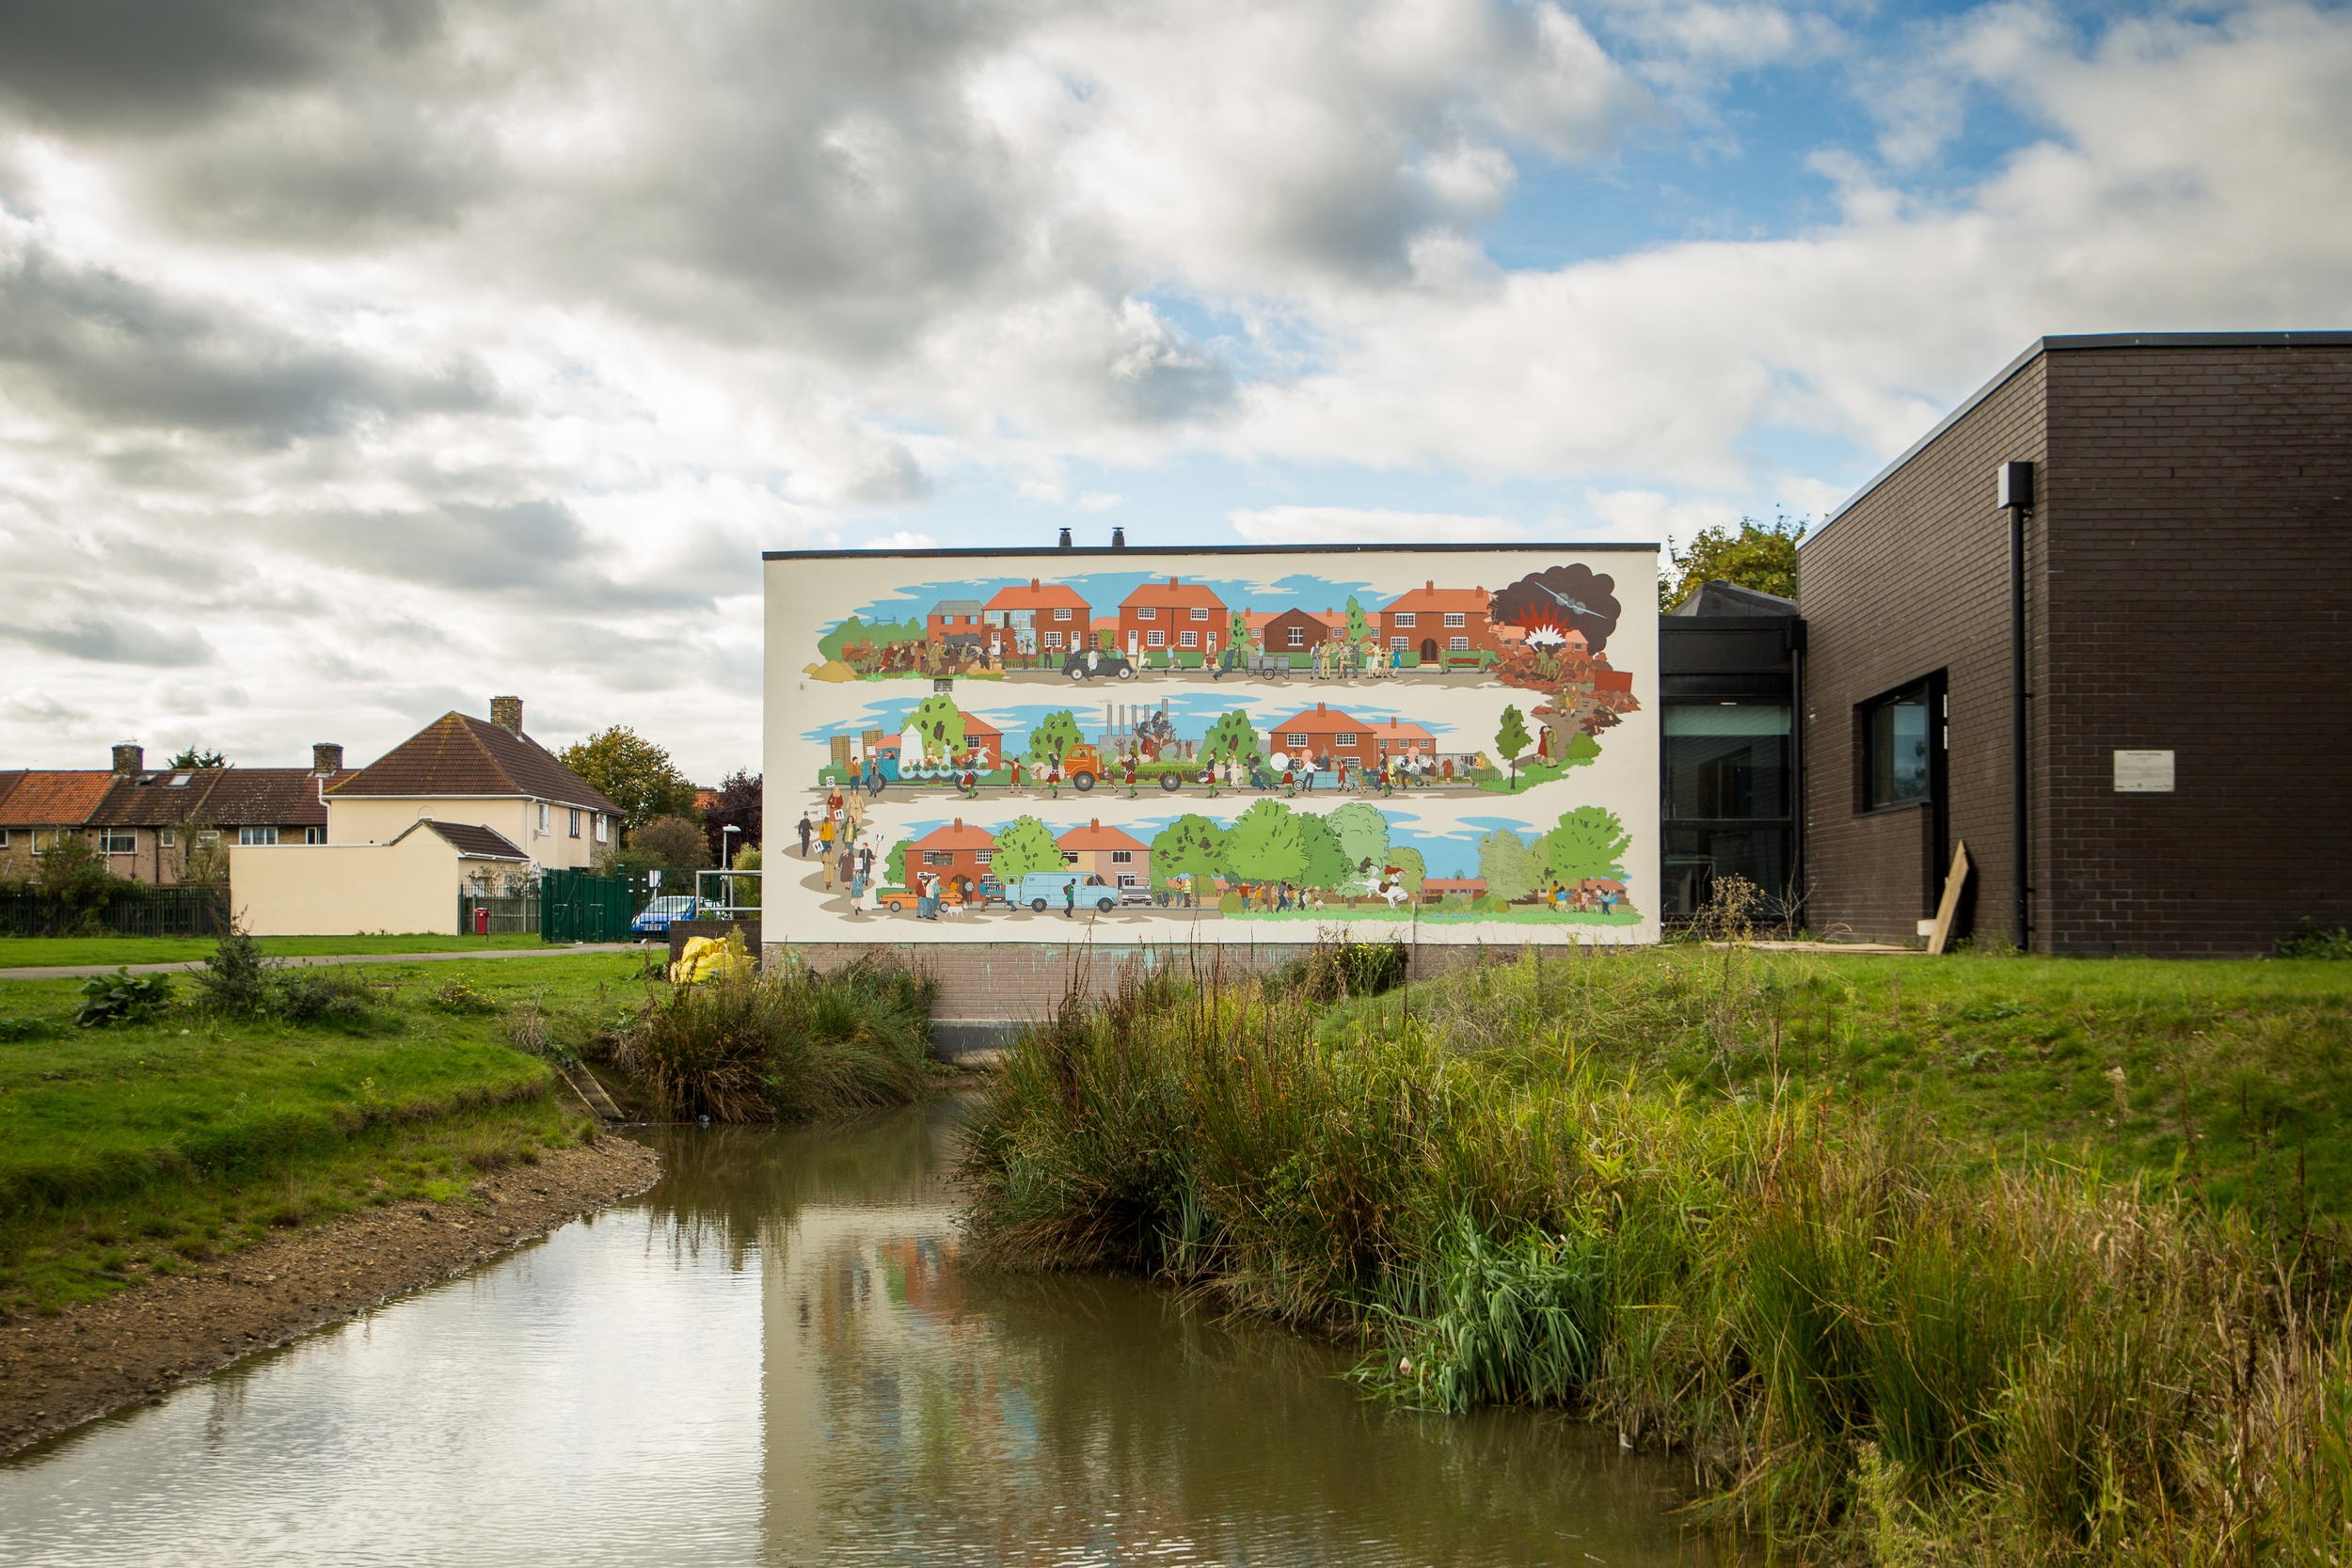 The Becontree Mural Chad McCail 2014 c Emil Charlaff 4.jpg